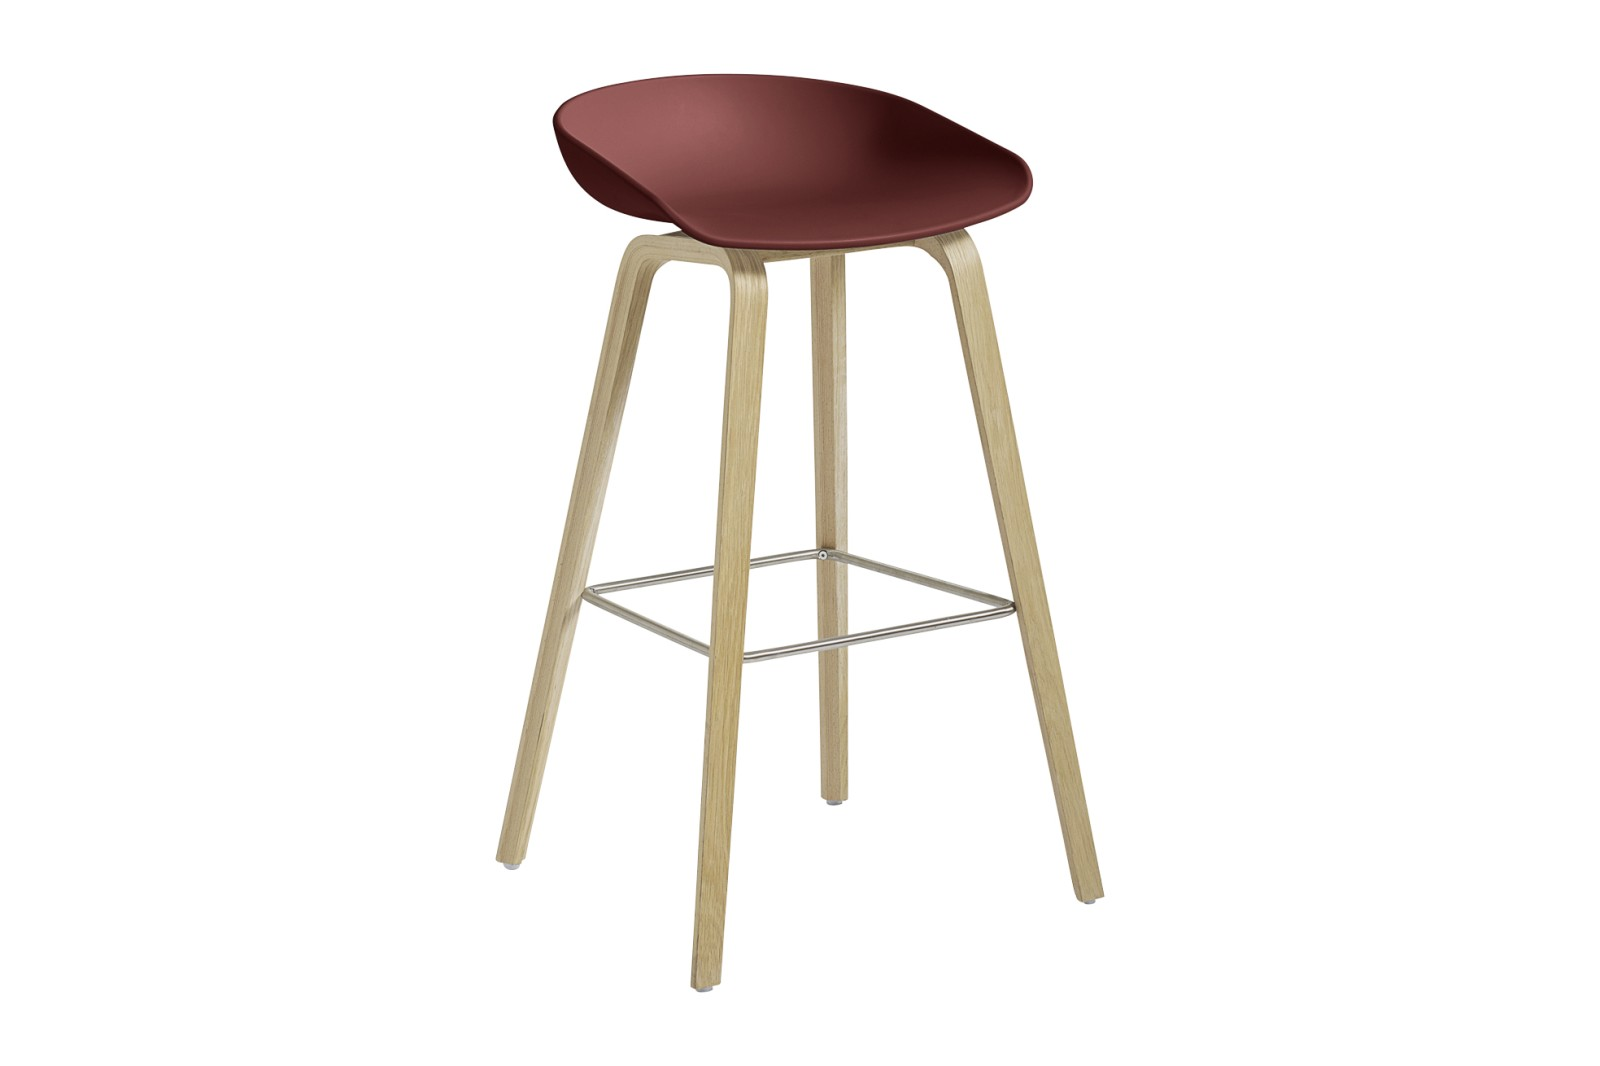 About A Stool AAS32 Matt Lacquered Oak Base, Brick Seat, High, Stainless Steel